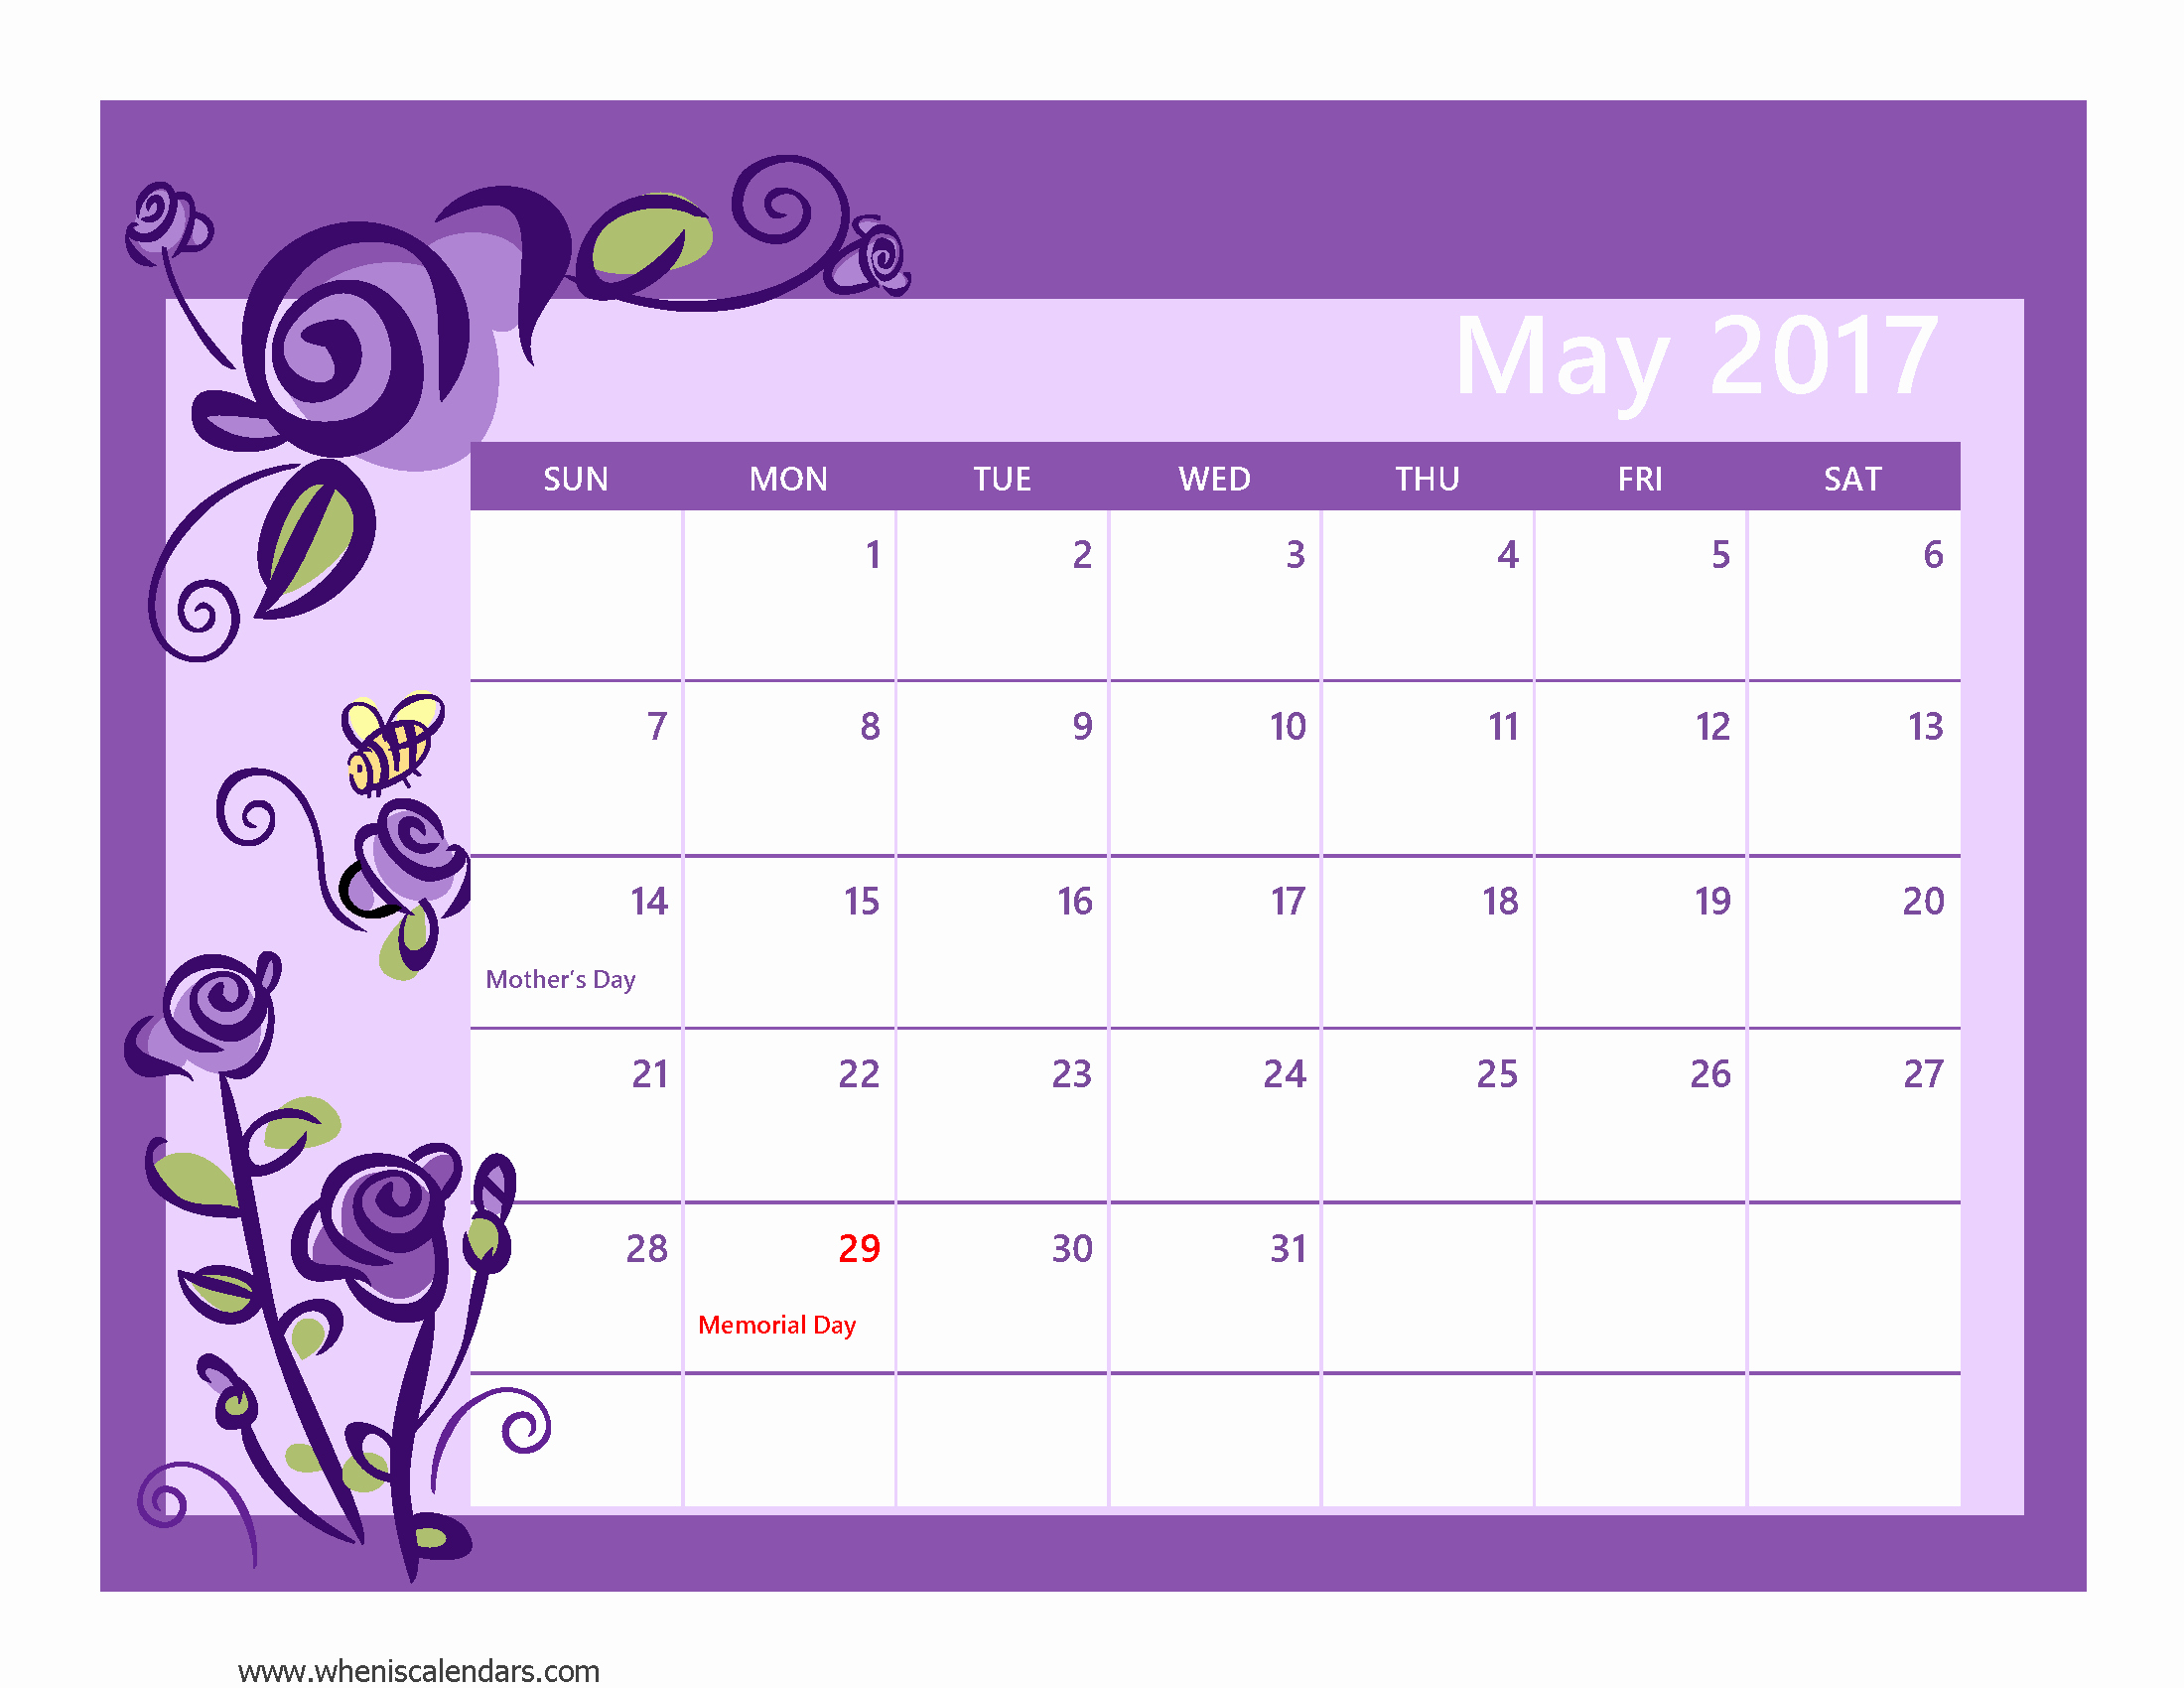 2017 Calendar Month by Month Lovely May 2017 Calendar Pdf